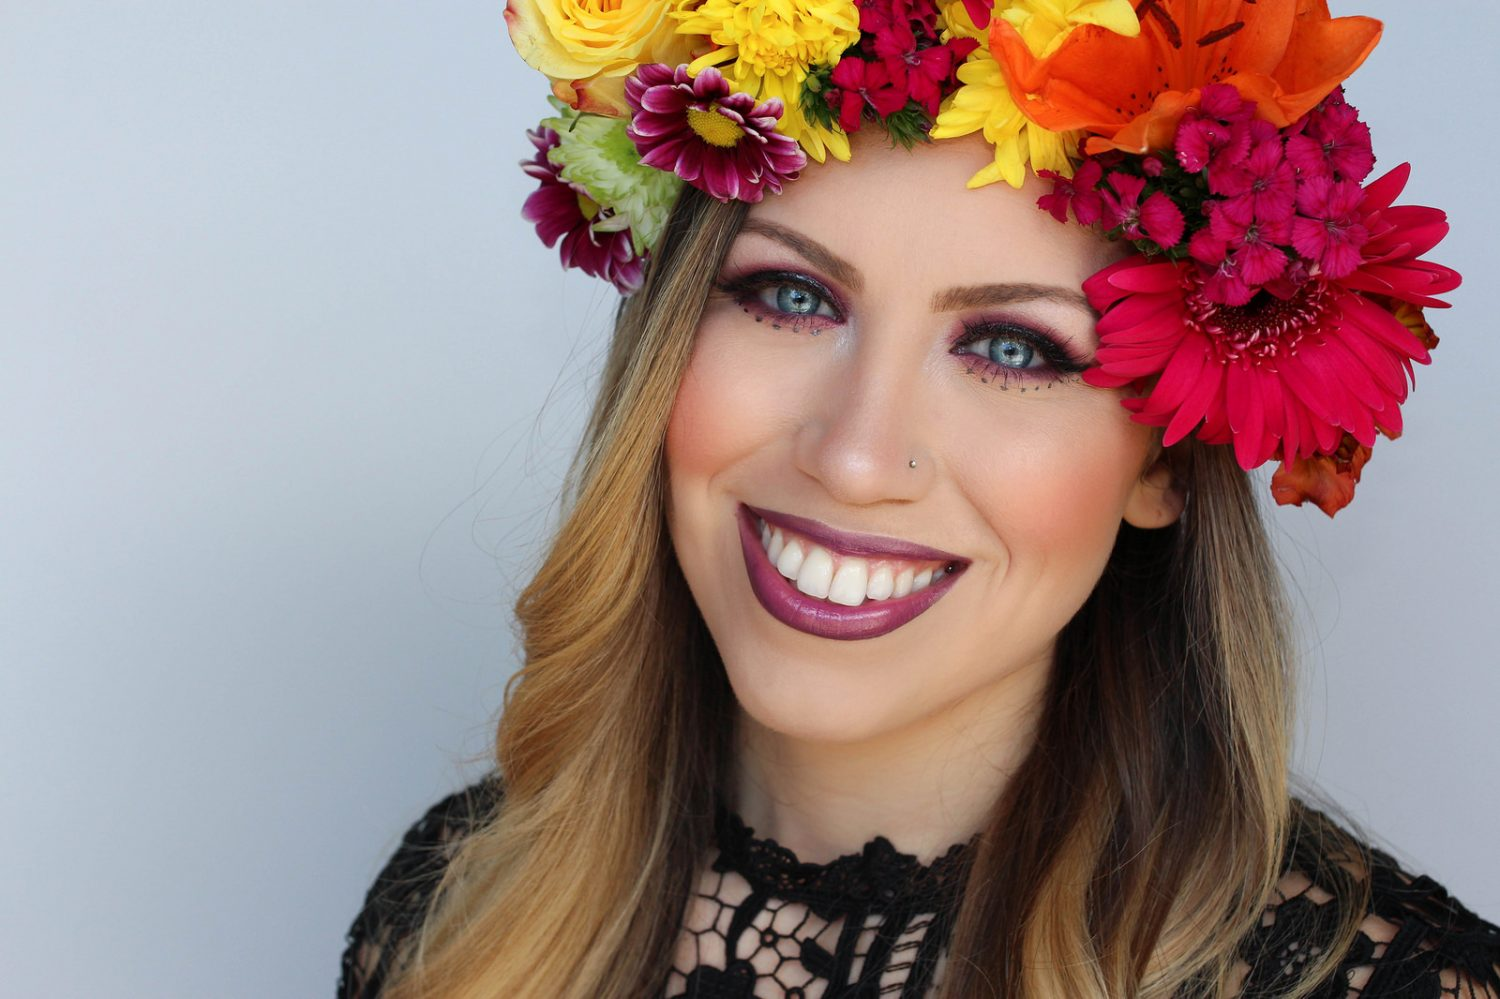 Colorful Festival Style Makeup